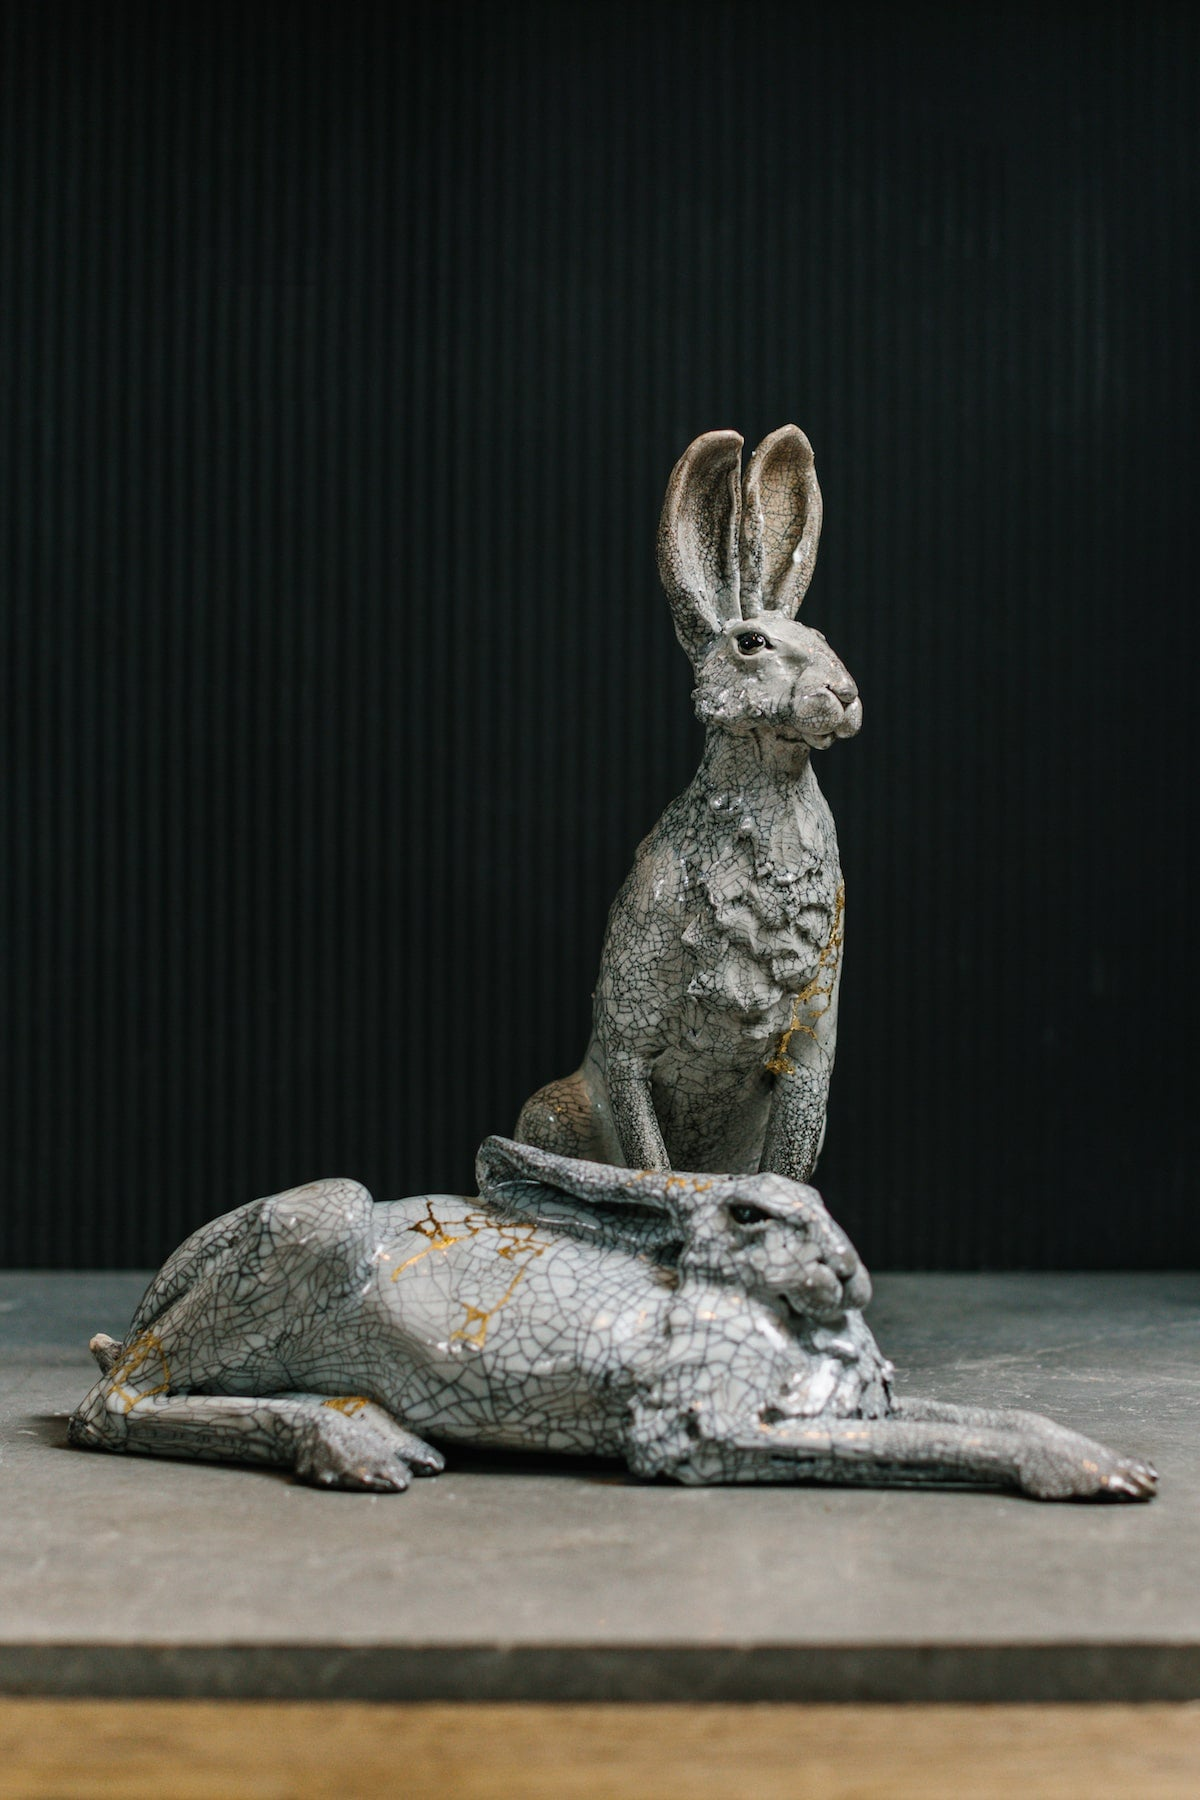 Raku Ceramic Hare, decorative ceramic interior accessory by Richard Ballantyne for AUTHOR